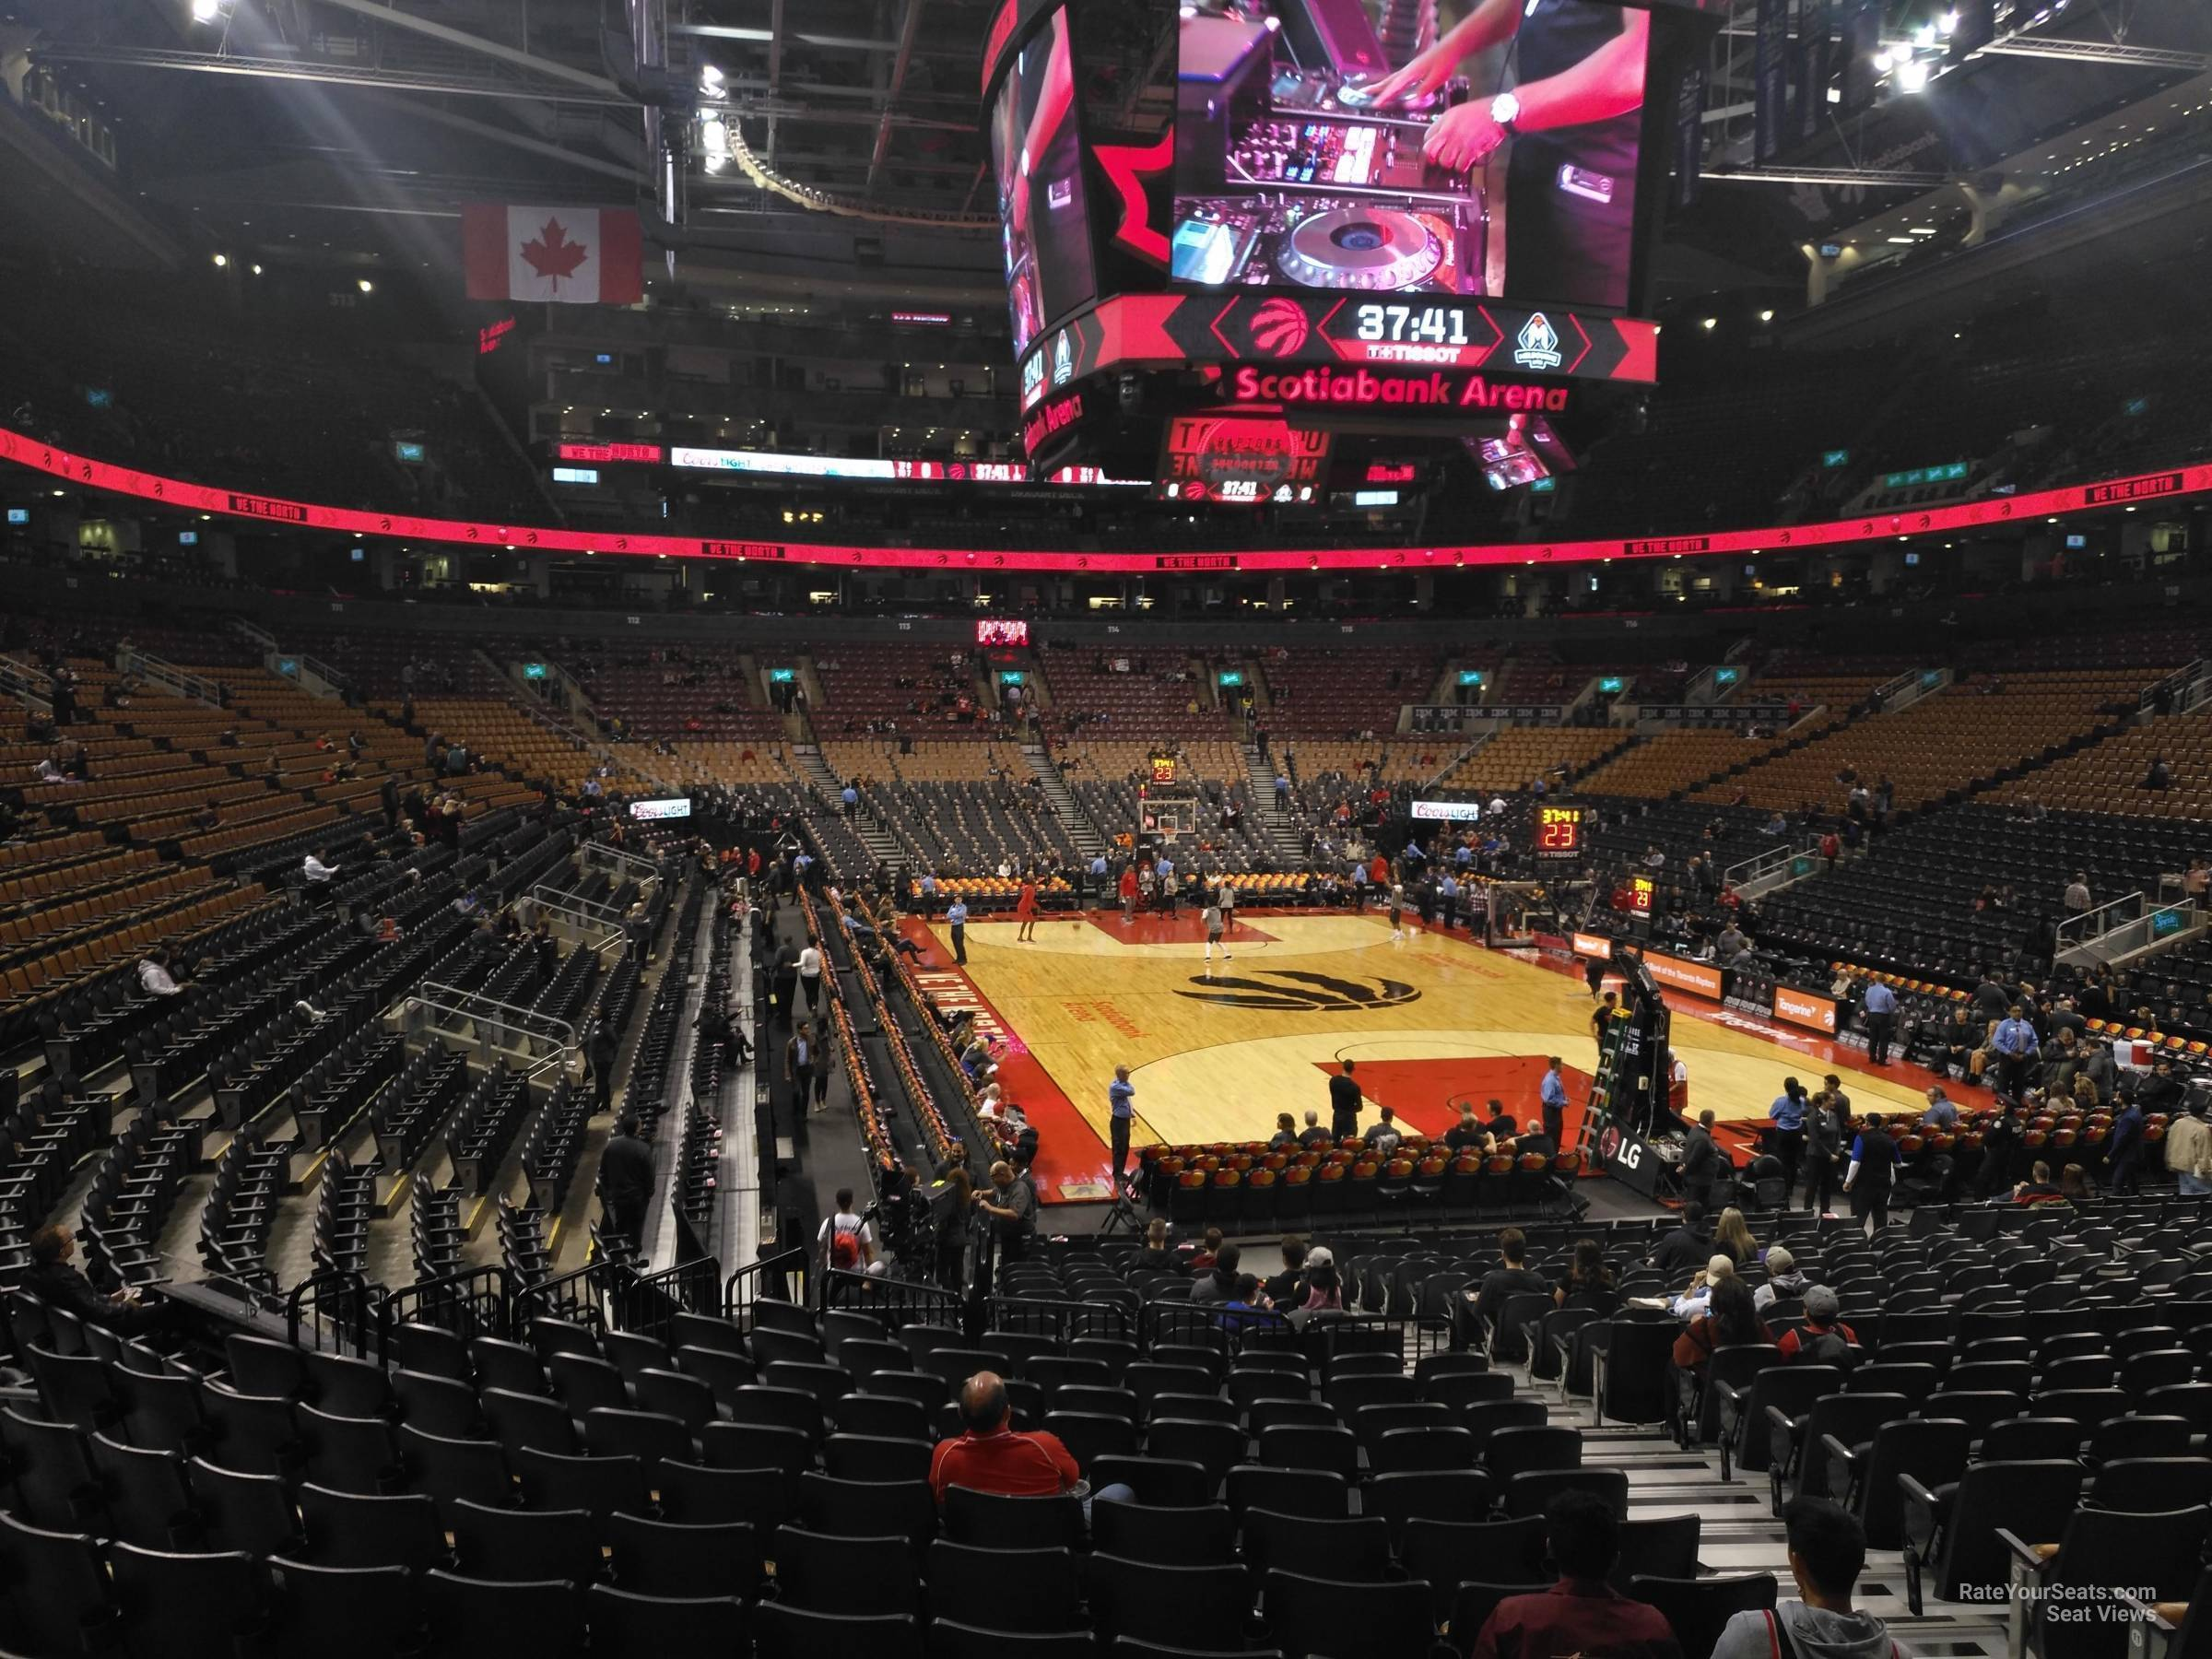 Toronto Raptors Seat View for Scotiabank Arena Section 104, Row 28